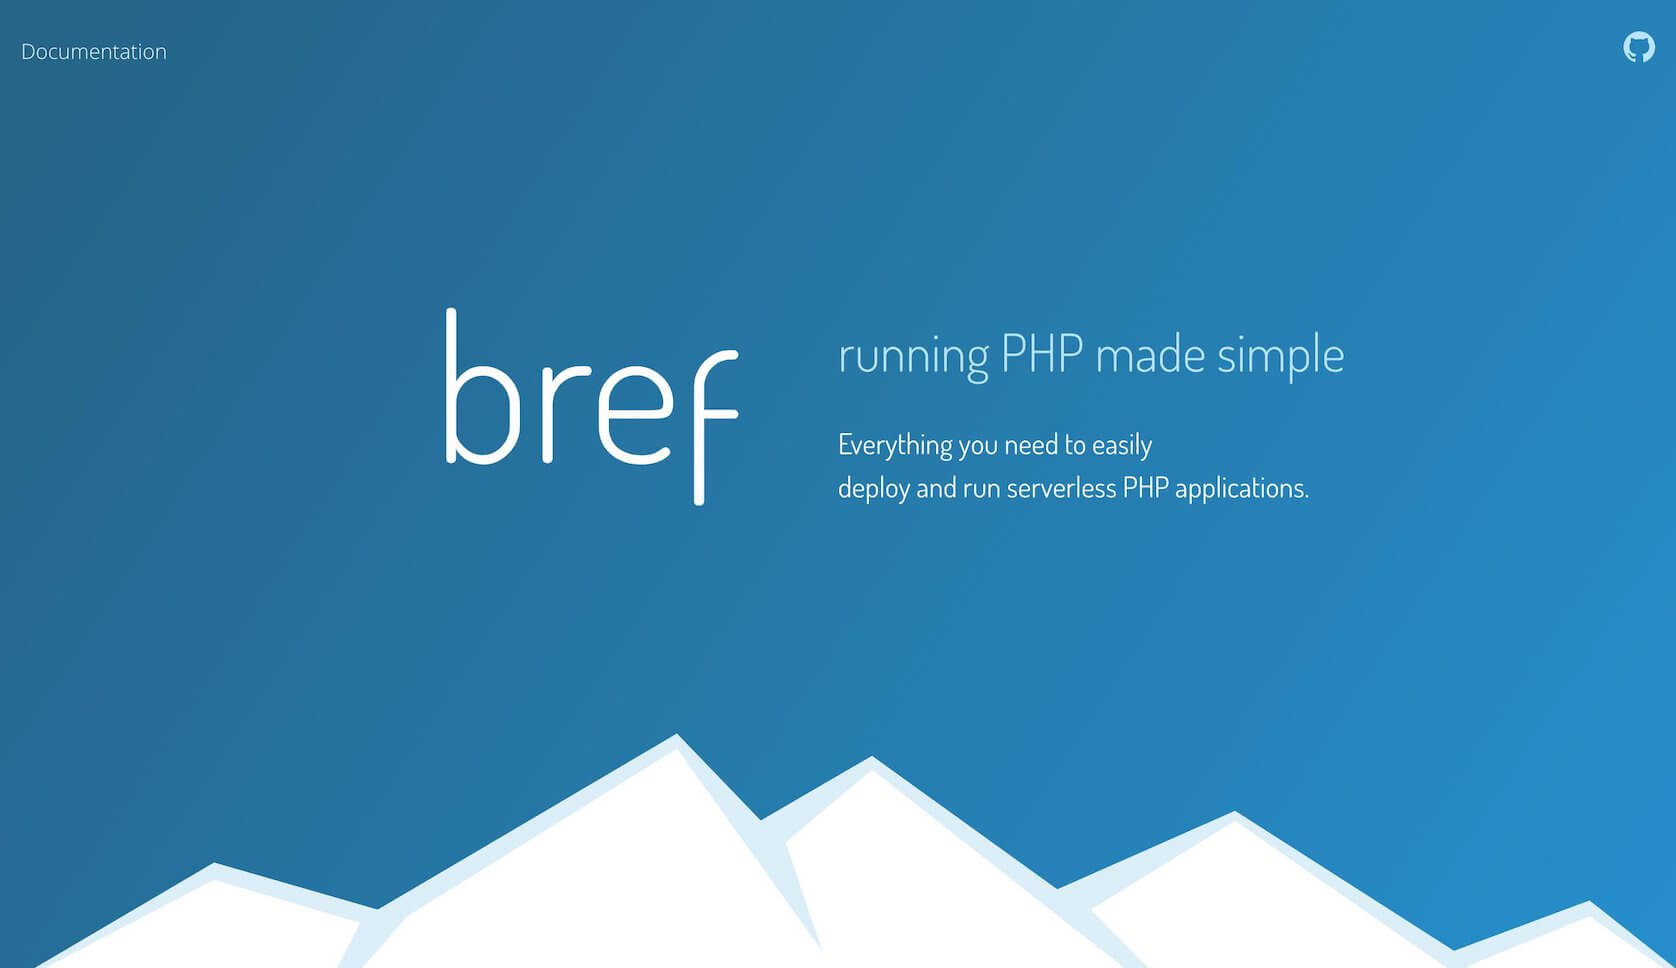 Running PHP made simple. Bref provides tools and documentation to easily deploy and run serverless PHP applications. Learn more